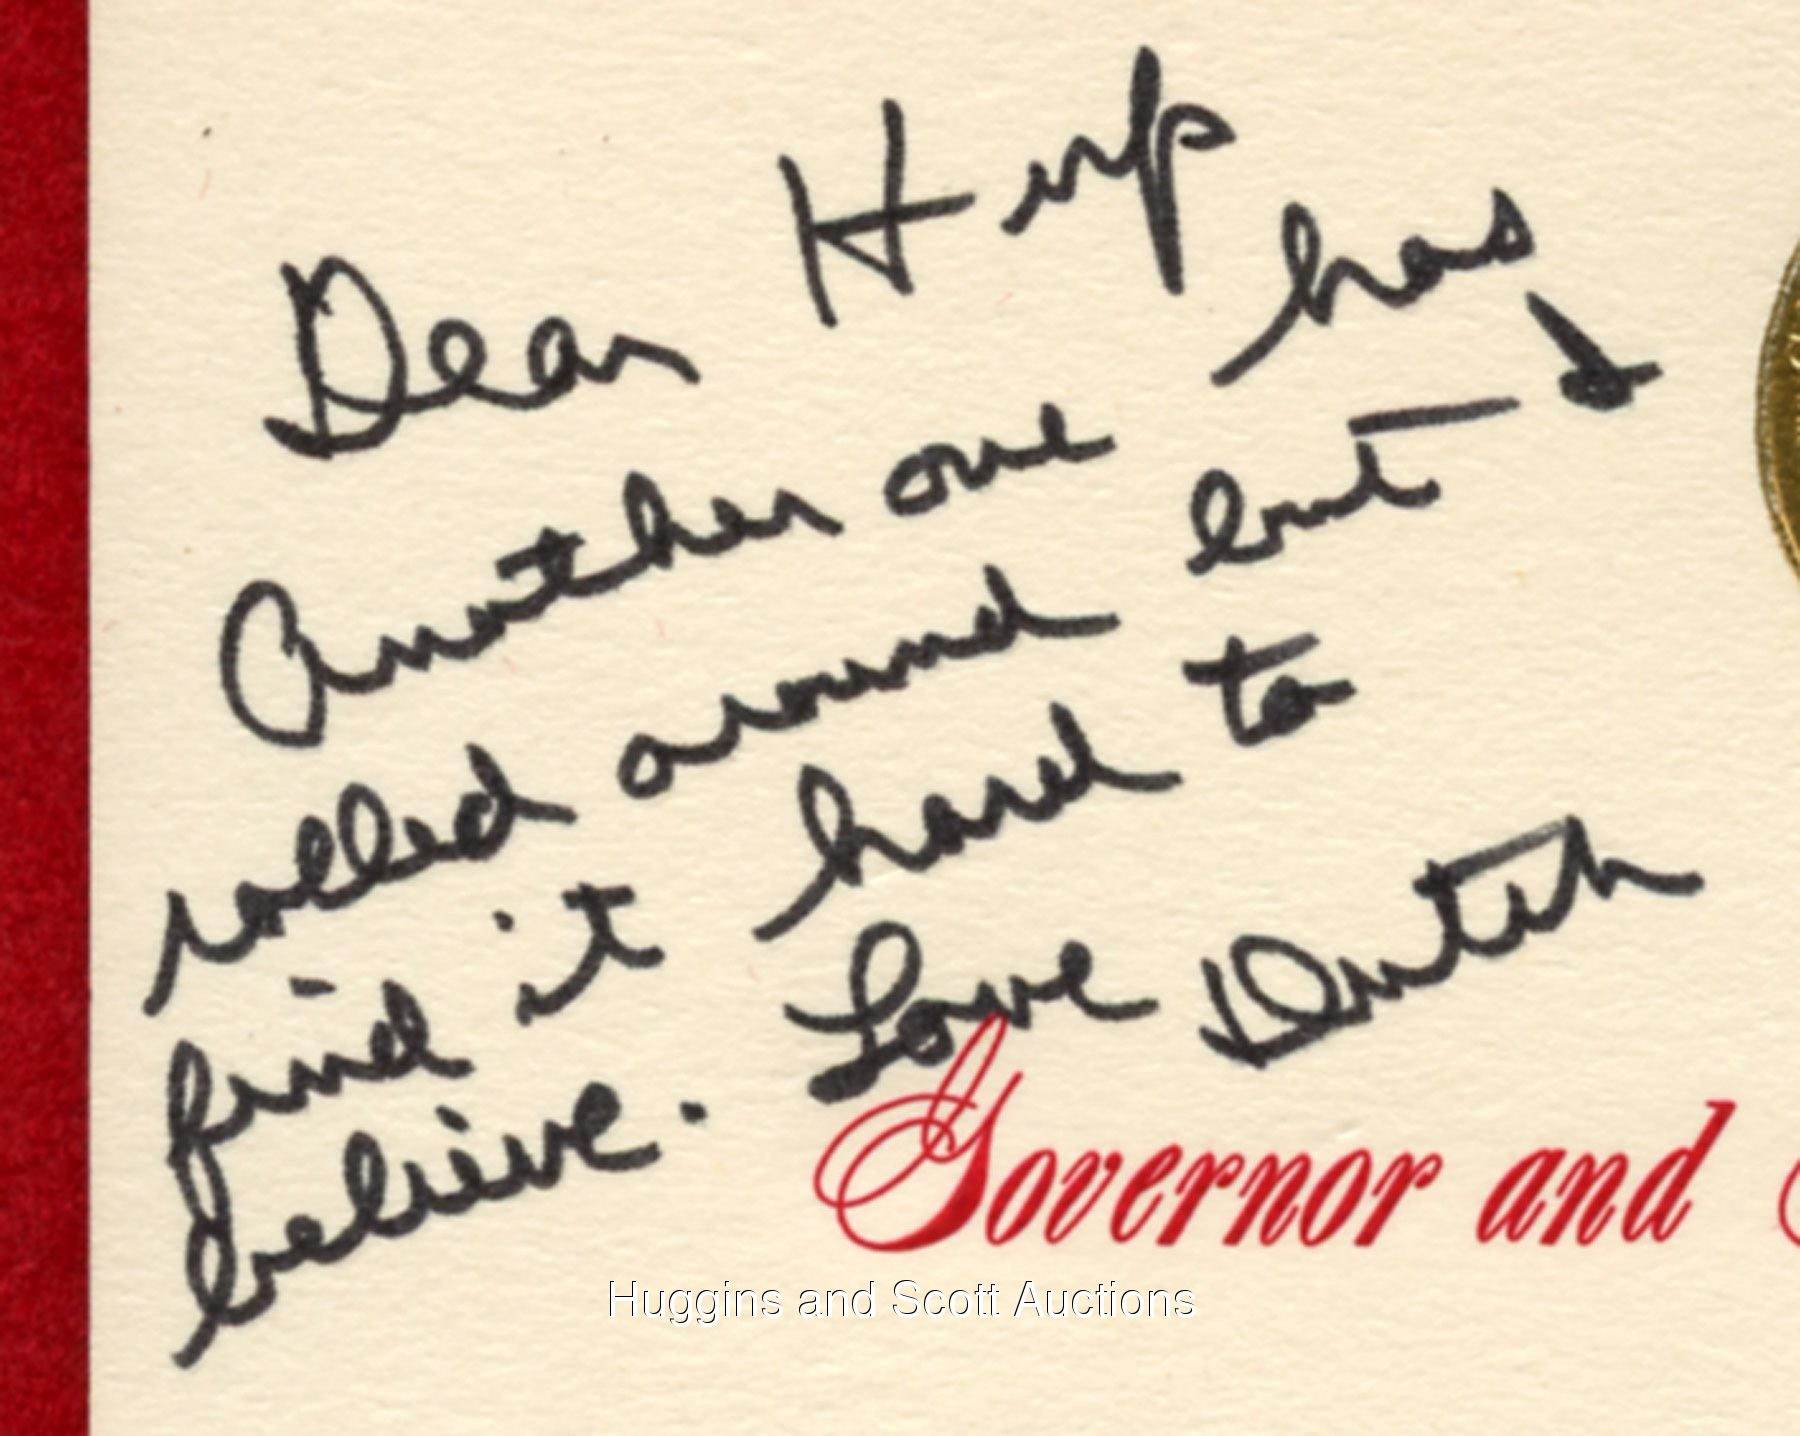 Ronald reagan governor of california christmas card signed as dutch pictures click on photo to enlarge feature will be enabled on 11232013 kristyandbryce Choice Image